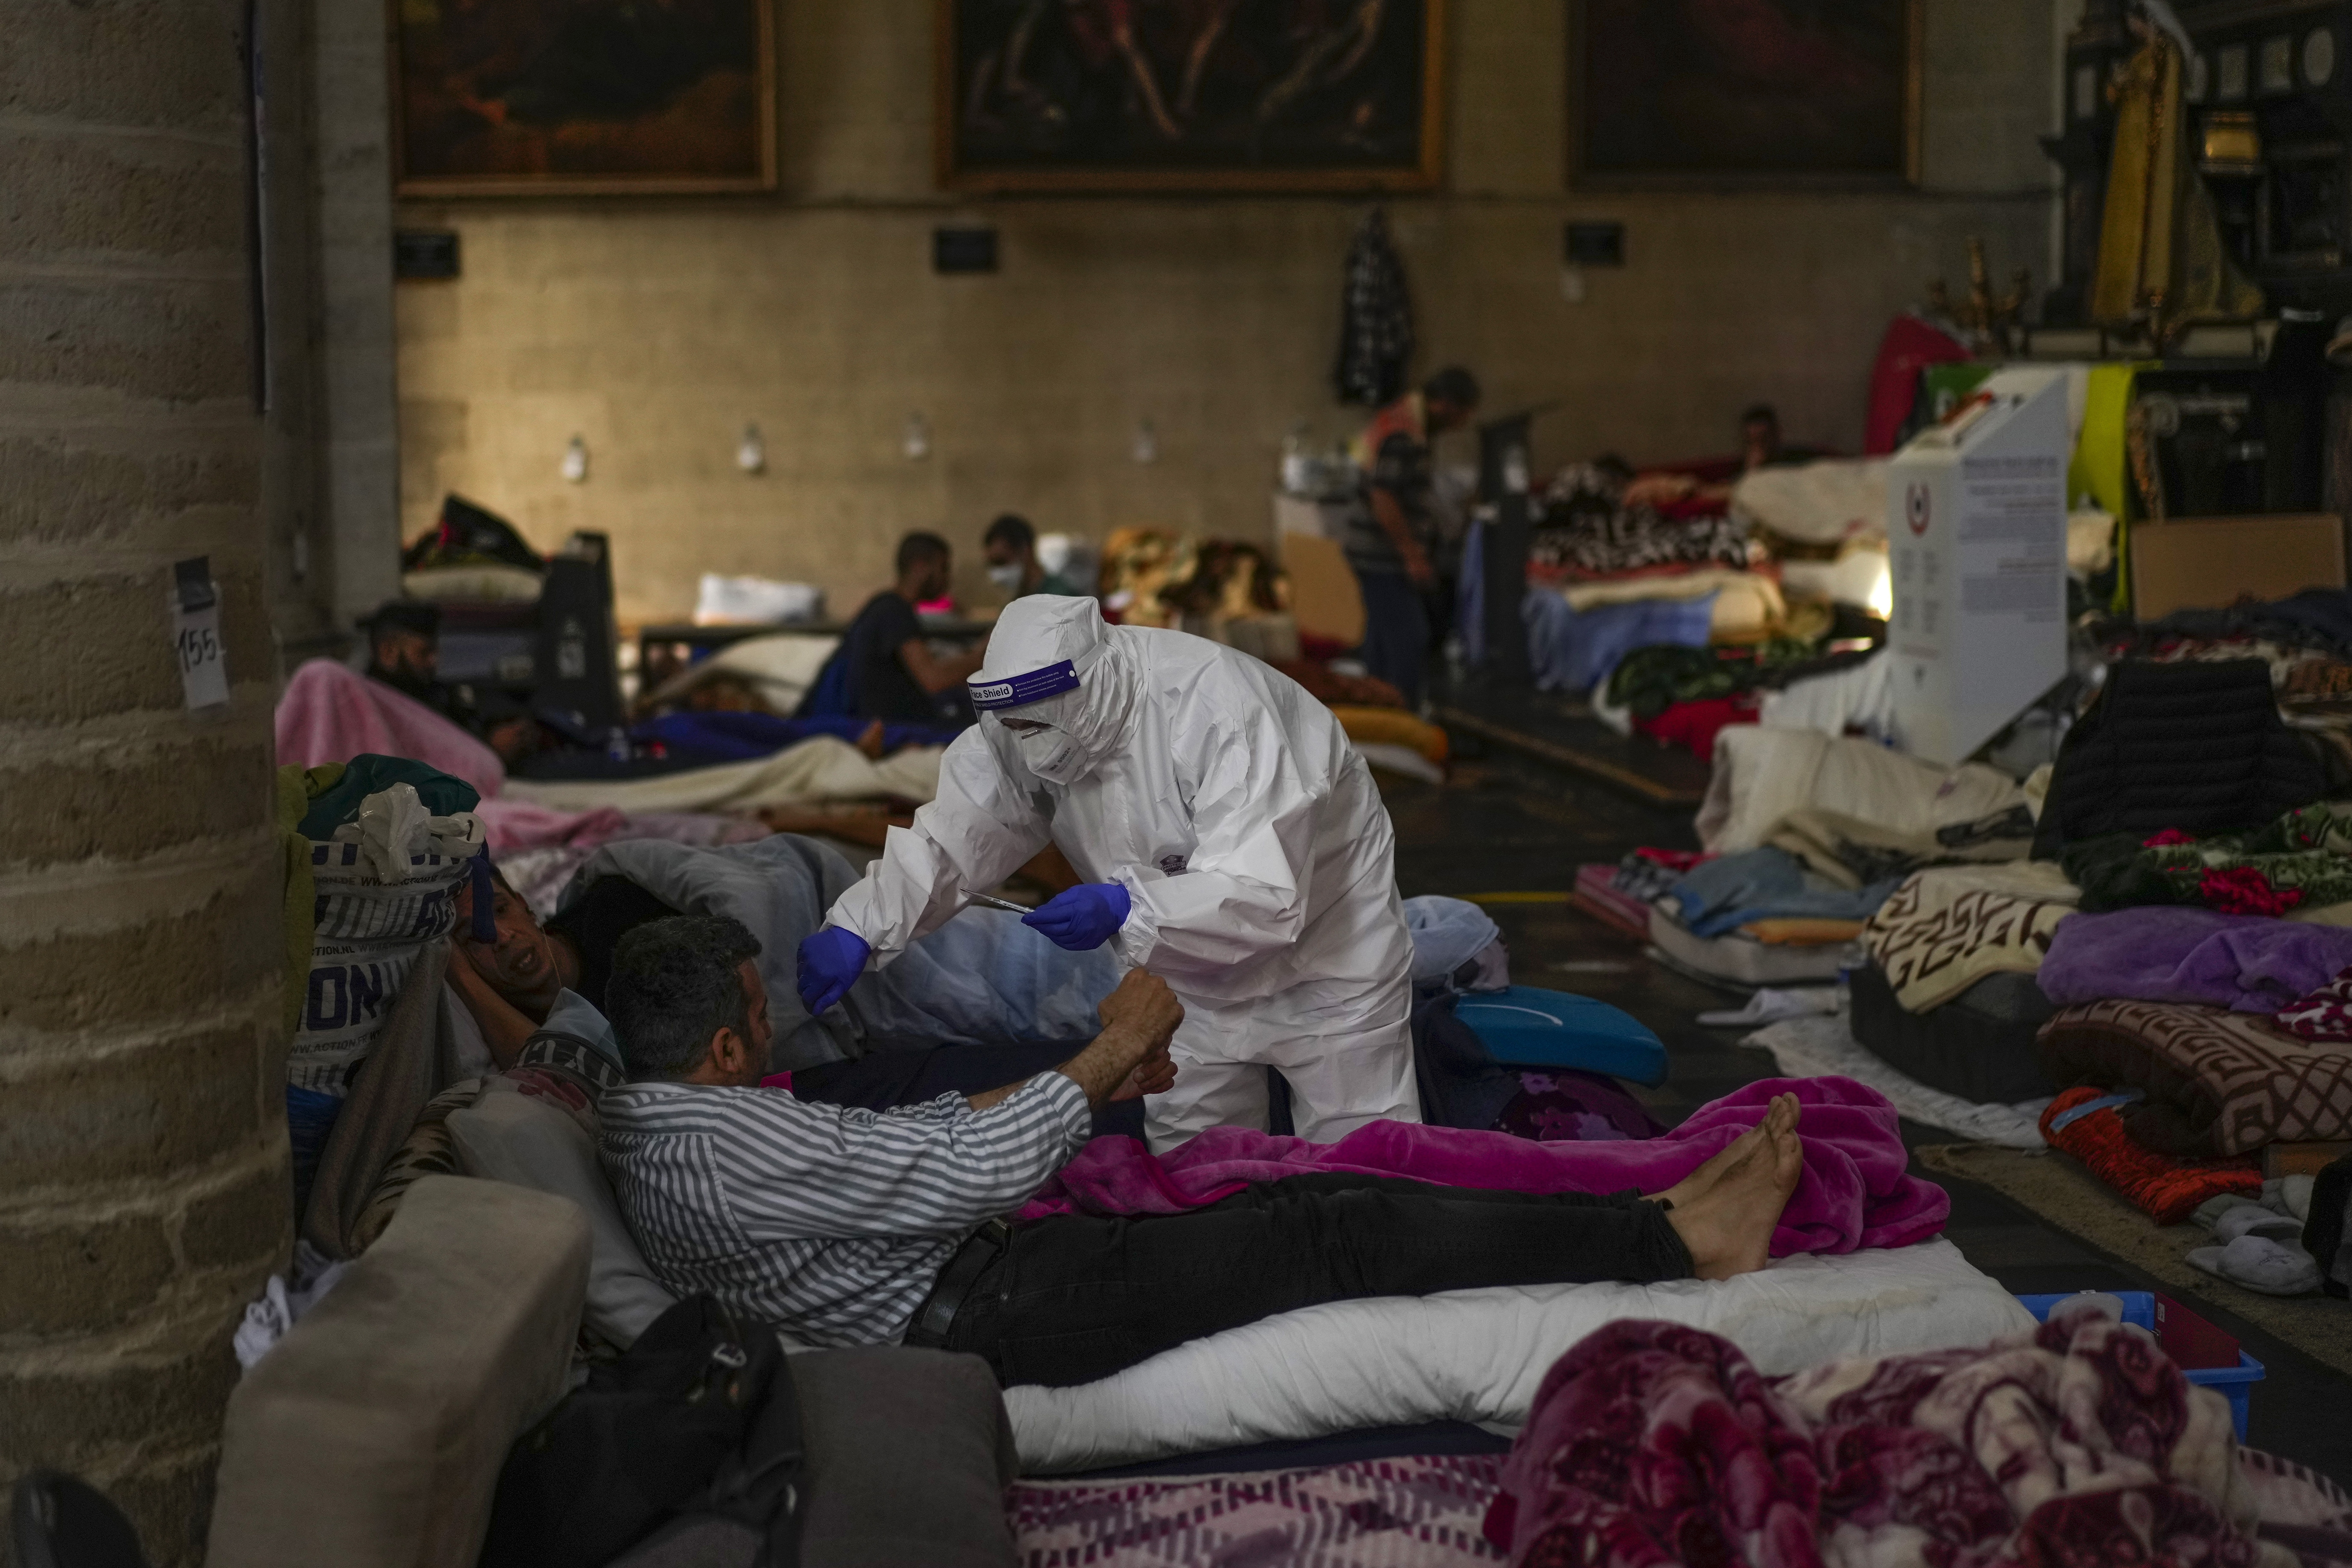 A Red Cross health worker attends a man on hunger strike at Saint-Jean-Baptiste-au-Beguinage church in Brussels in June.